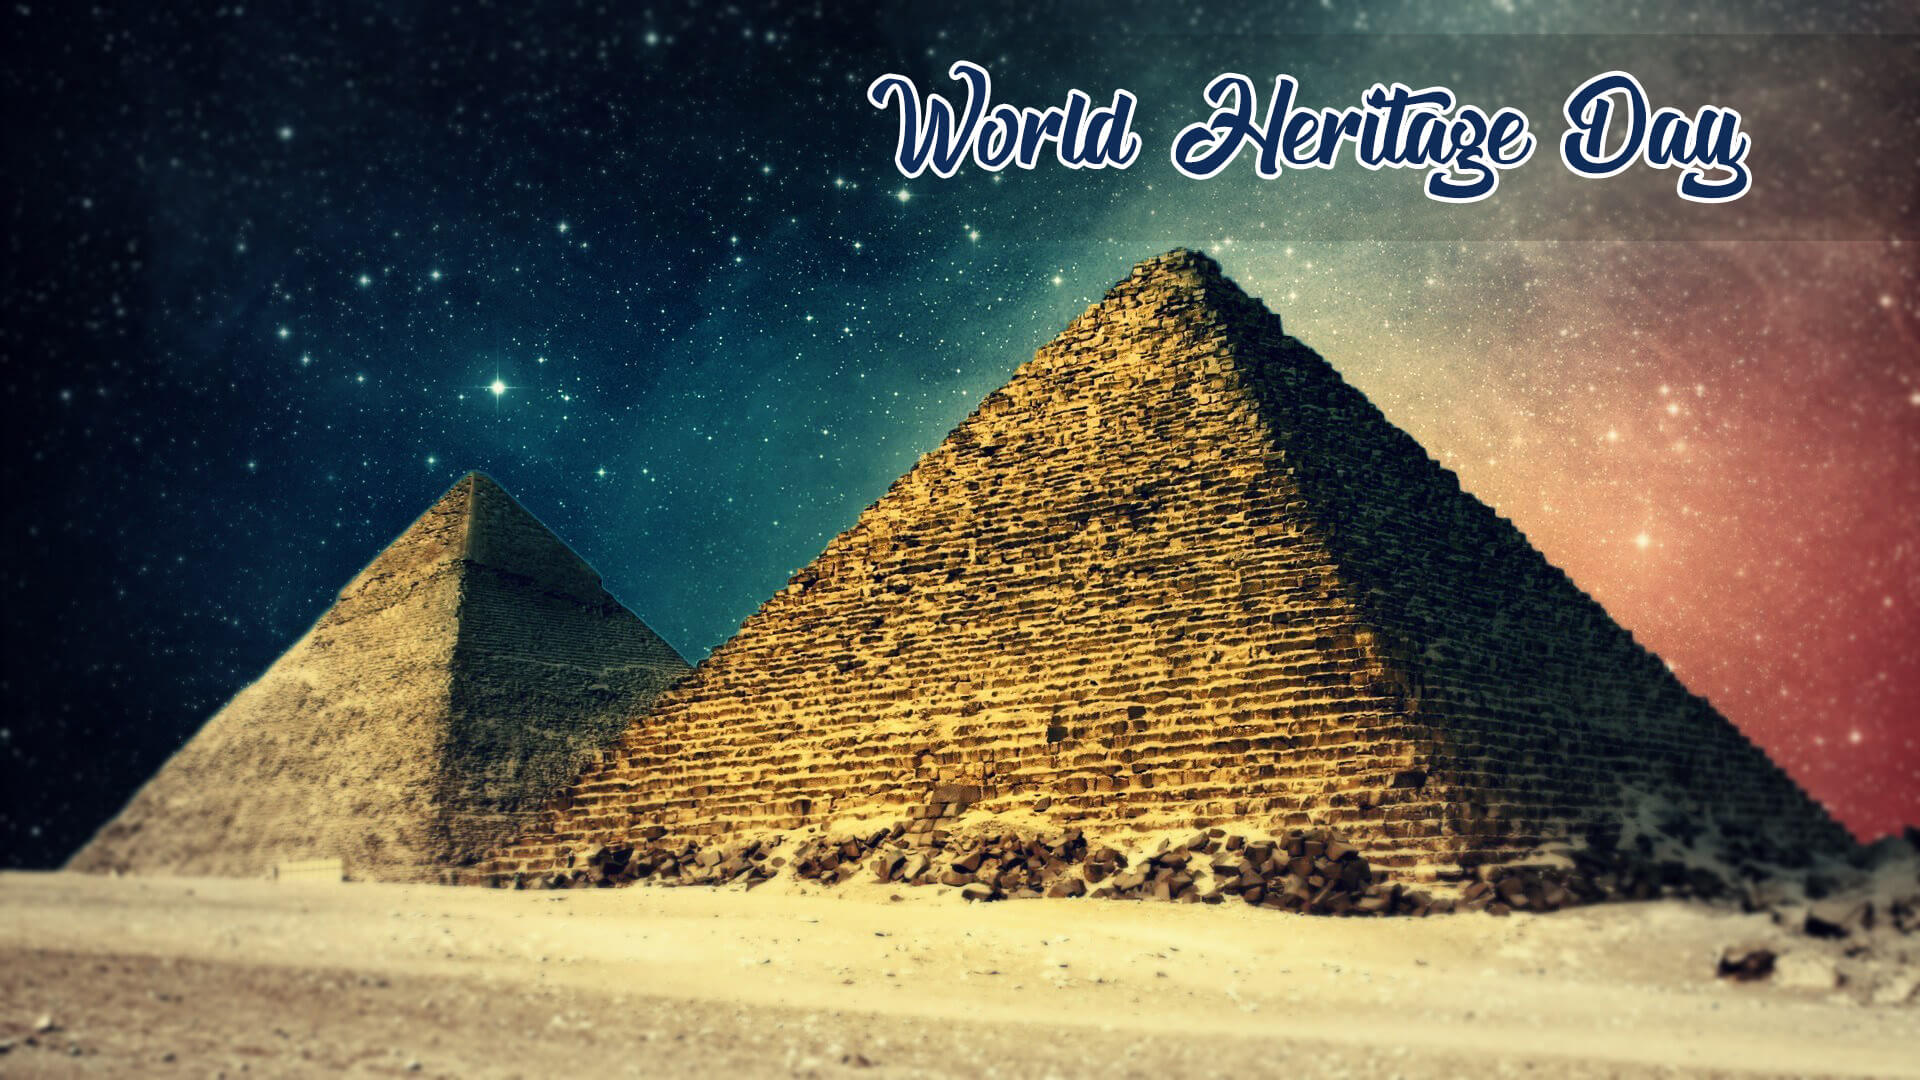 world heritage day seven 7 wonders egypt pyramid hd wallpaper